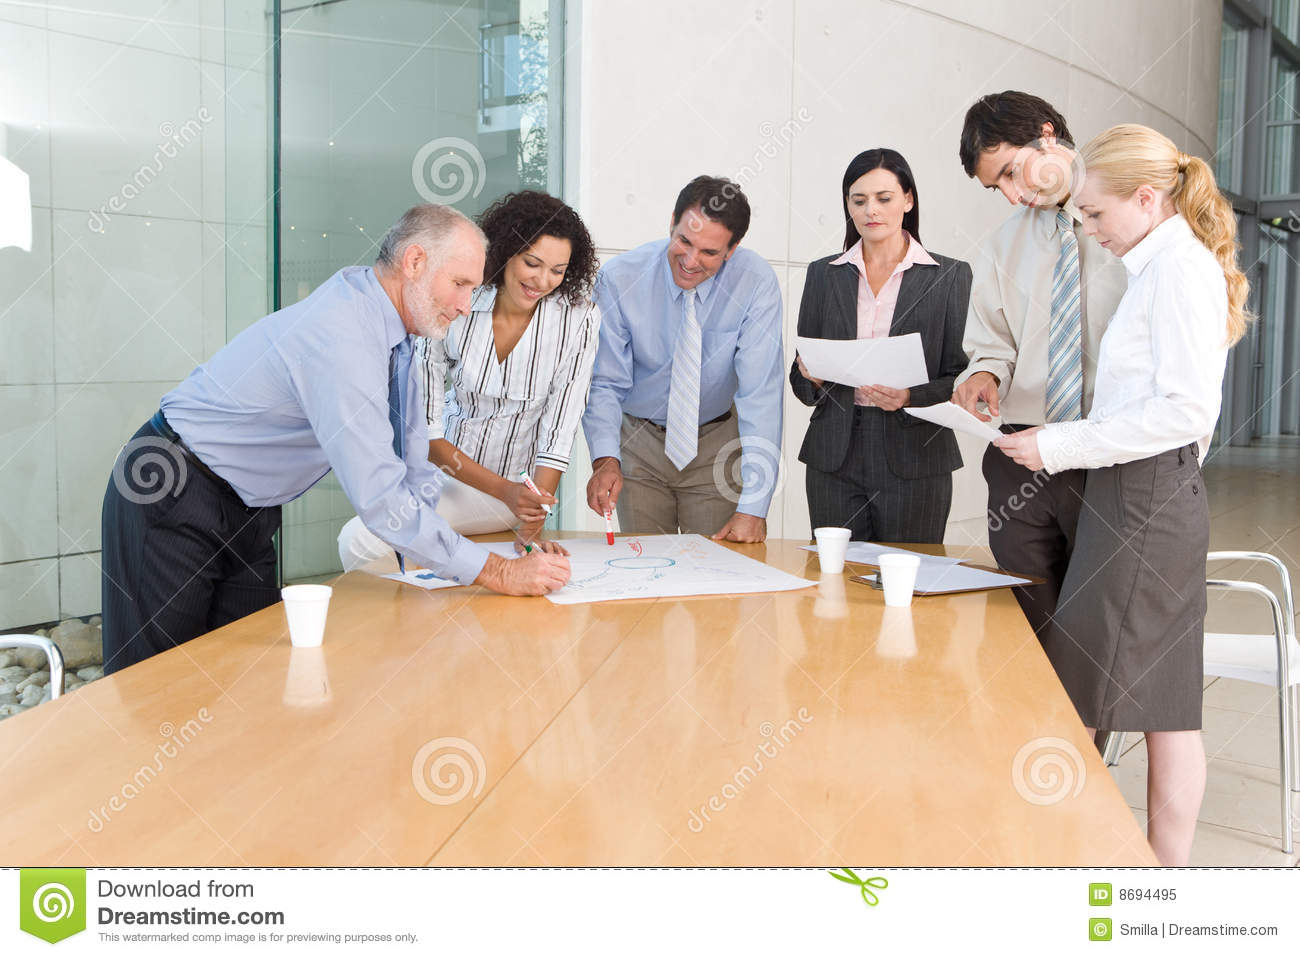 Business Group Meeting Royalty Free Stock Photo - Image: 8694495